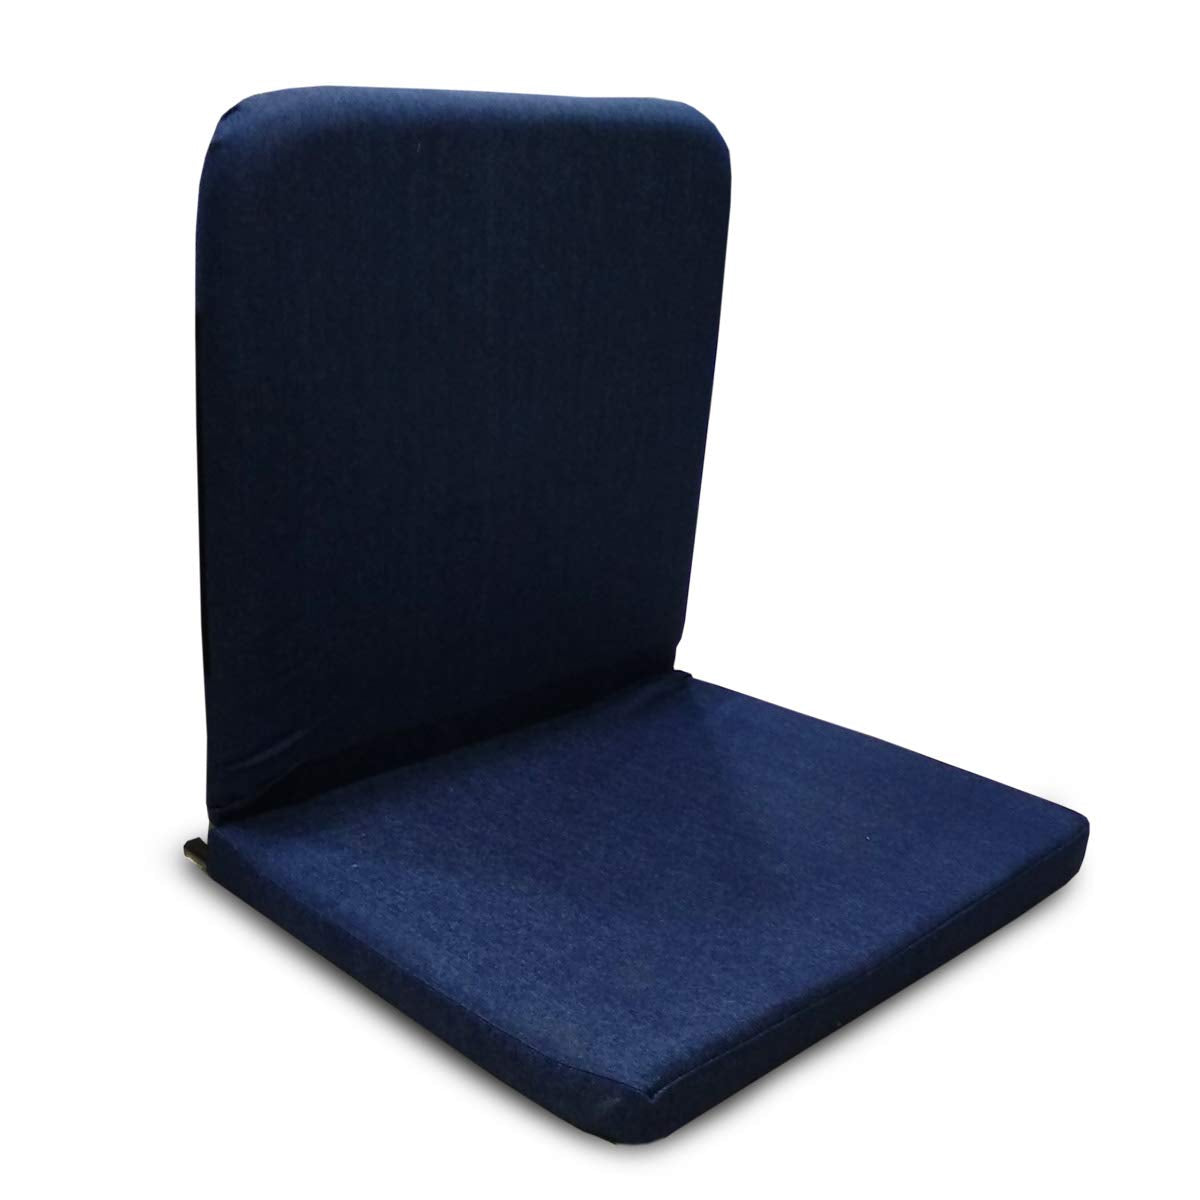 Kumaka | Folding Yoga Meditation Chair | Right Angle Back Support Portable Relaxing Chair